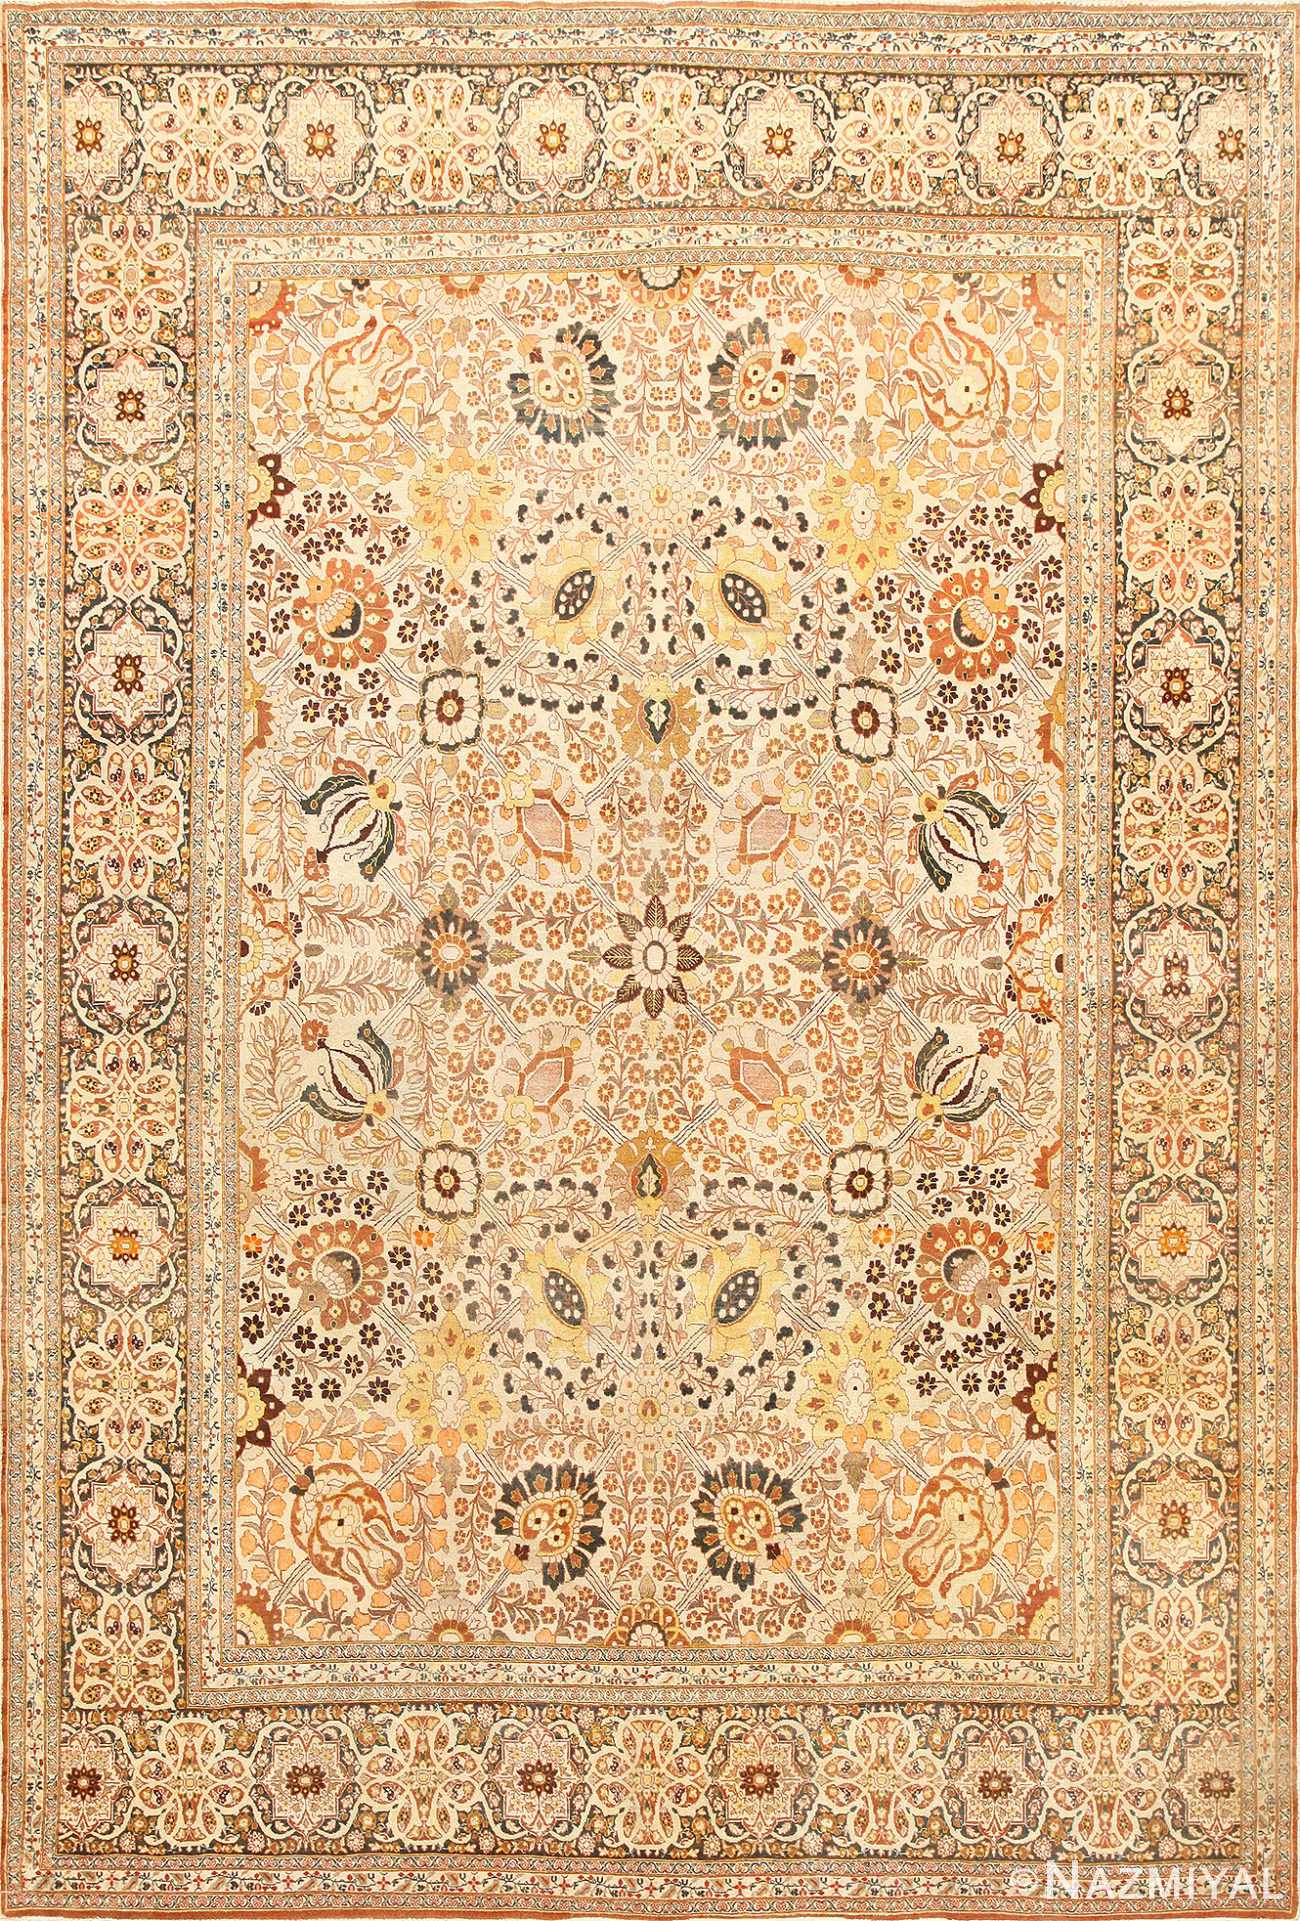 Fine Room Size Antique Persian Tabriz Rug 50696 Nazmiyal